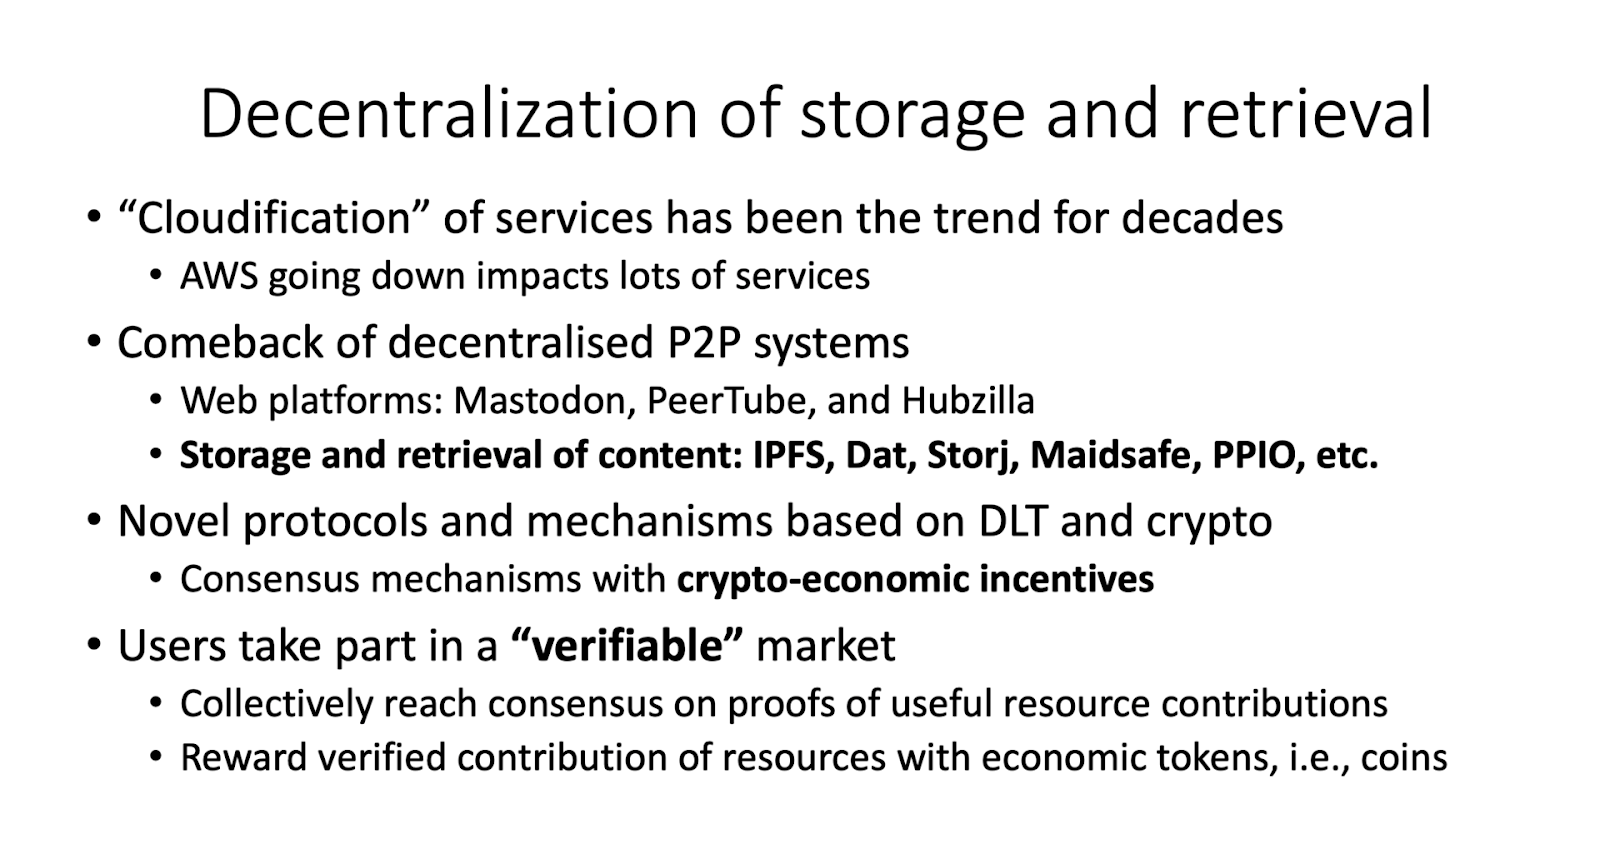 Decentralization of Storage And Retrieval